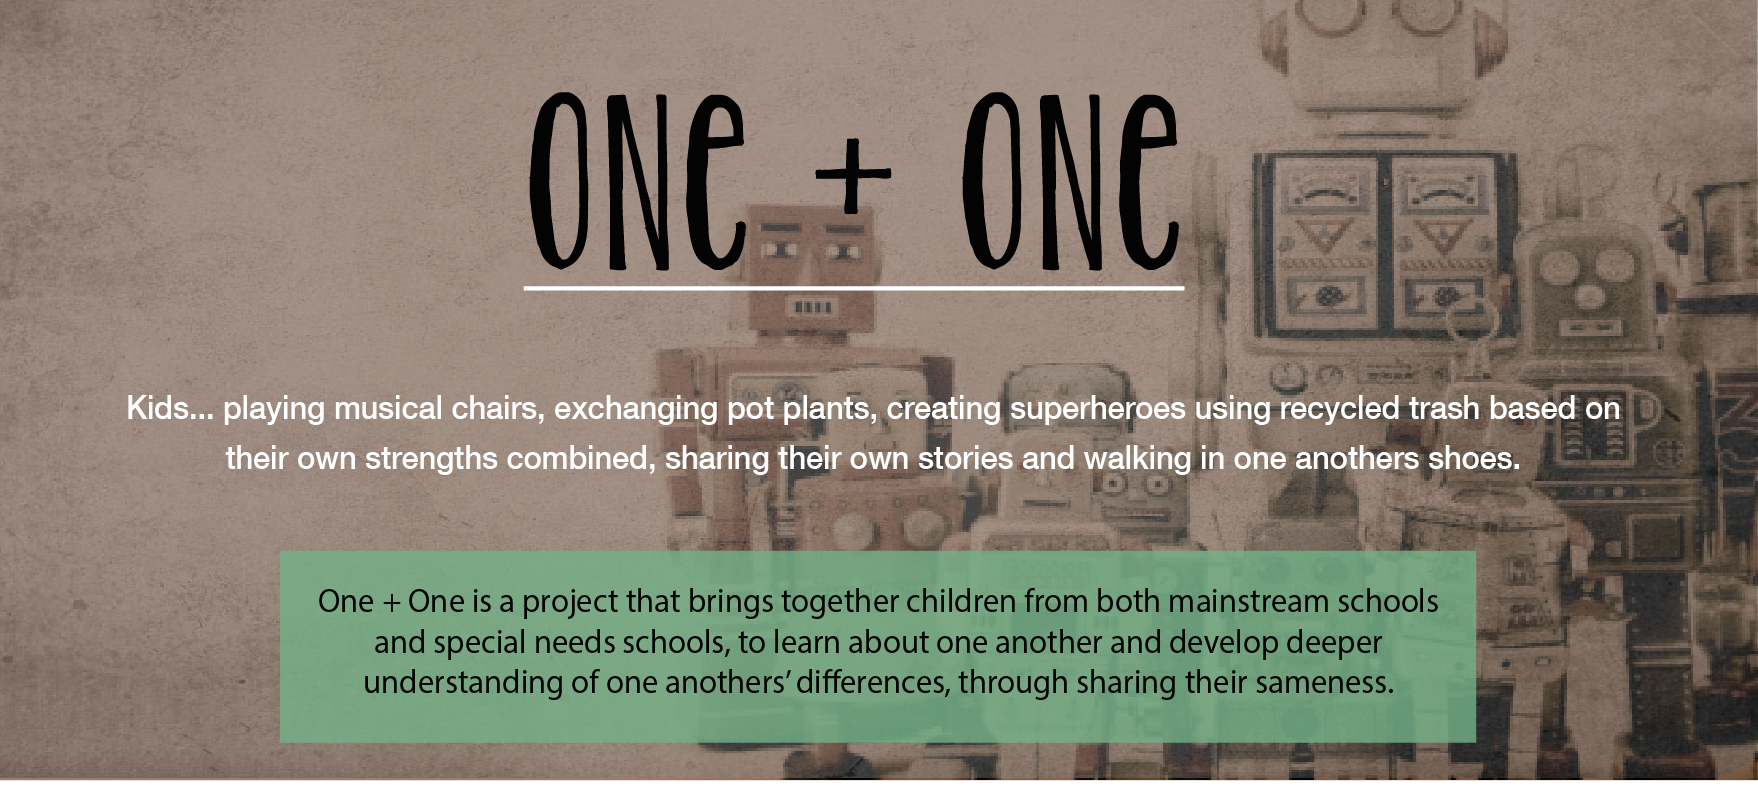 One + One is a project that brings together children from both mainstream schools and special needs school, to learn about one another and develop deeper understanding of the anothers' differences, through sharing their sameness.